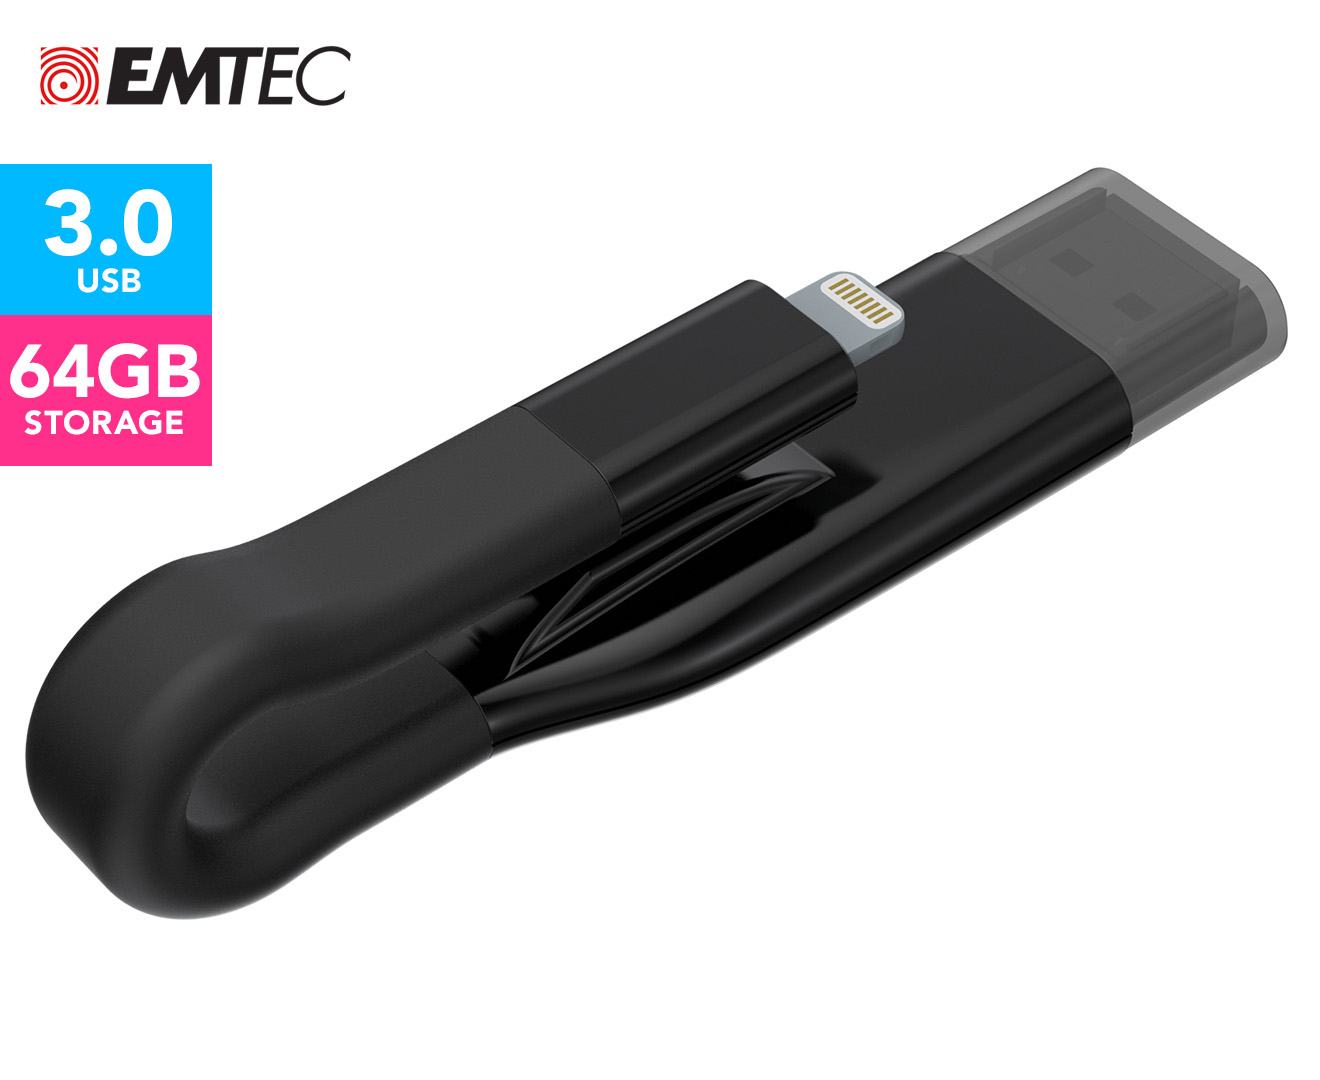 mp3 downloader for iphone emtec icobra2 usb 3 0 2 in 1 64gb flash drive black 1870